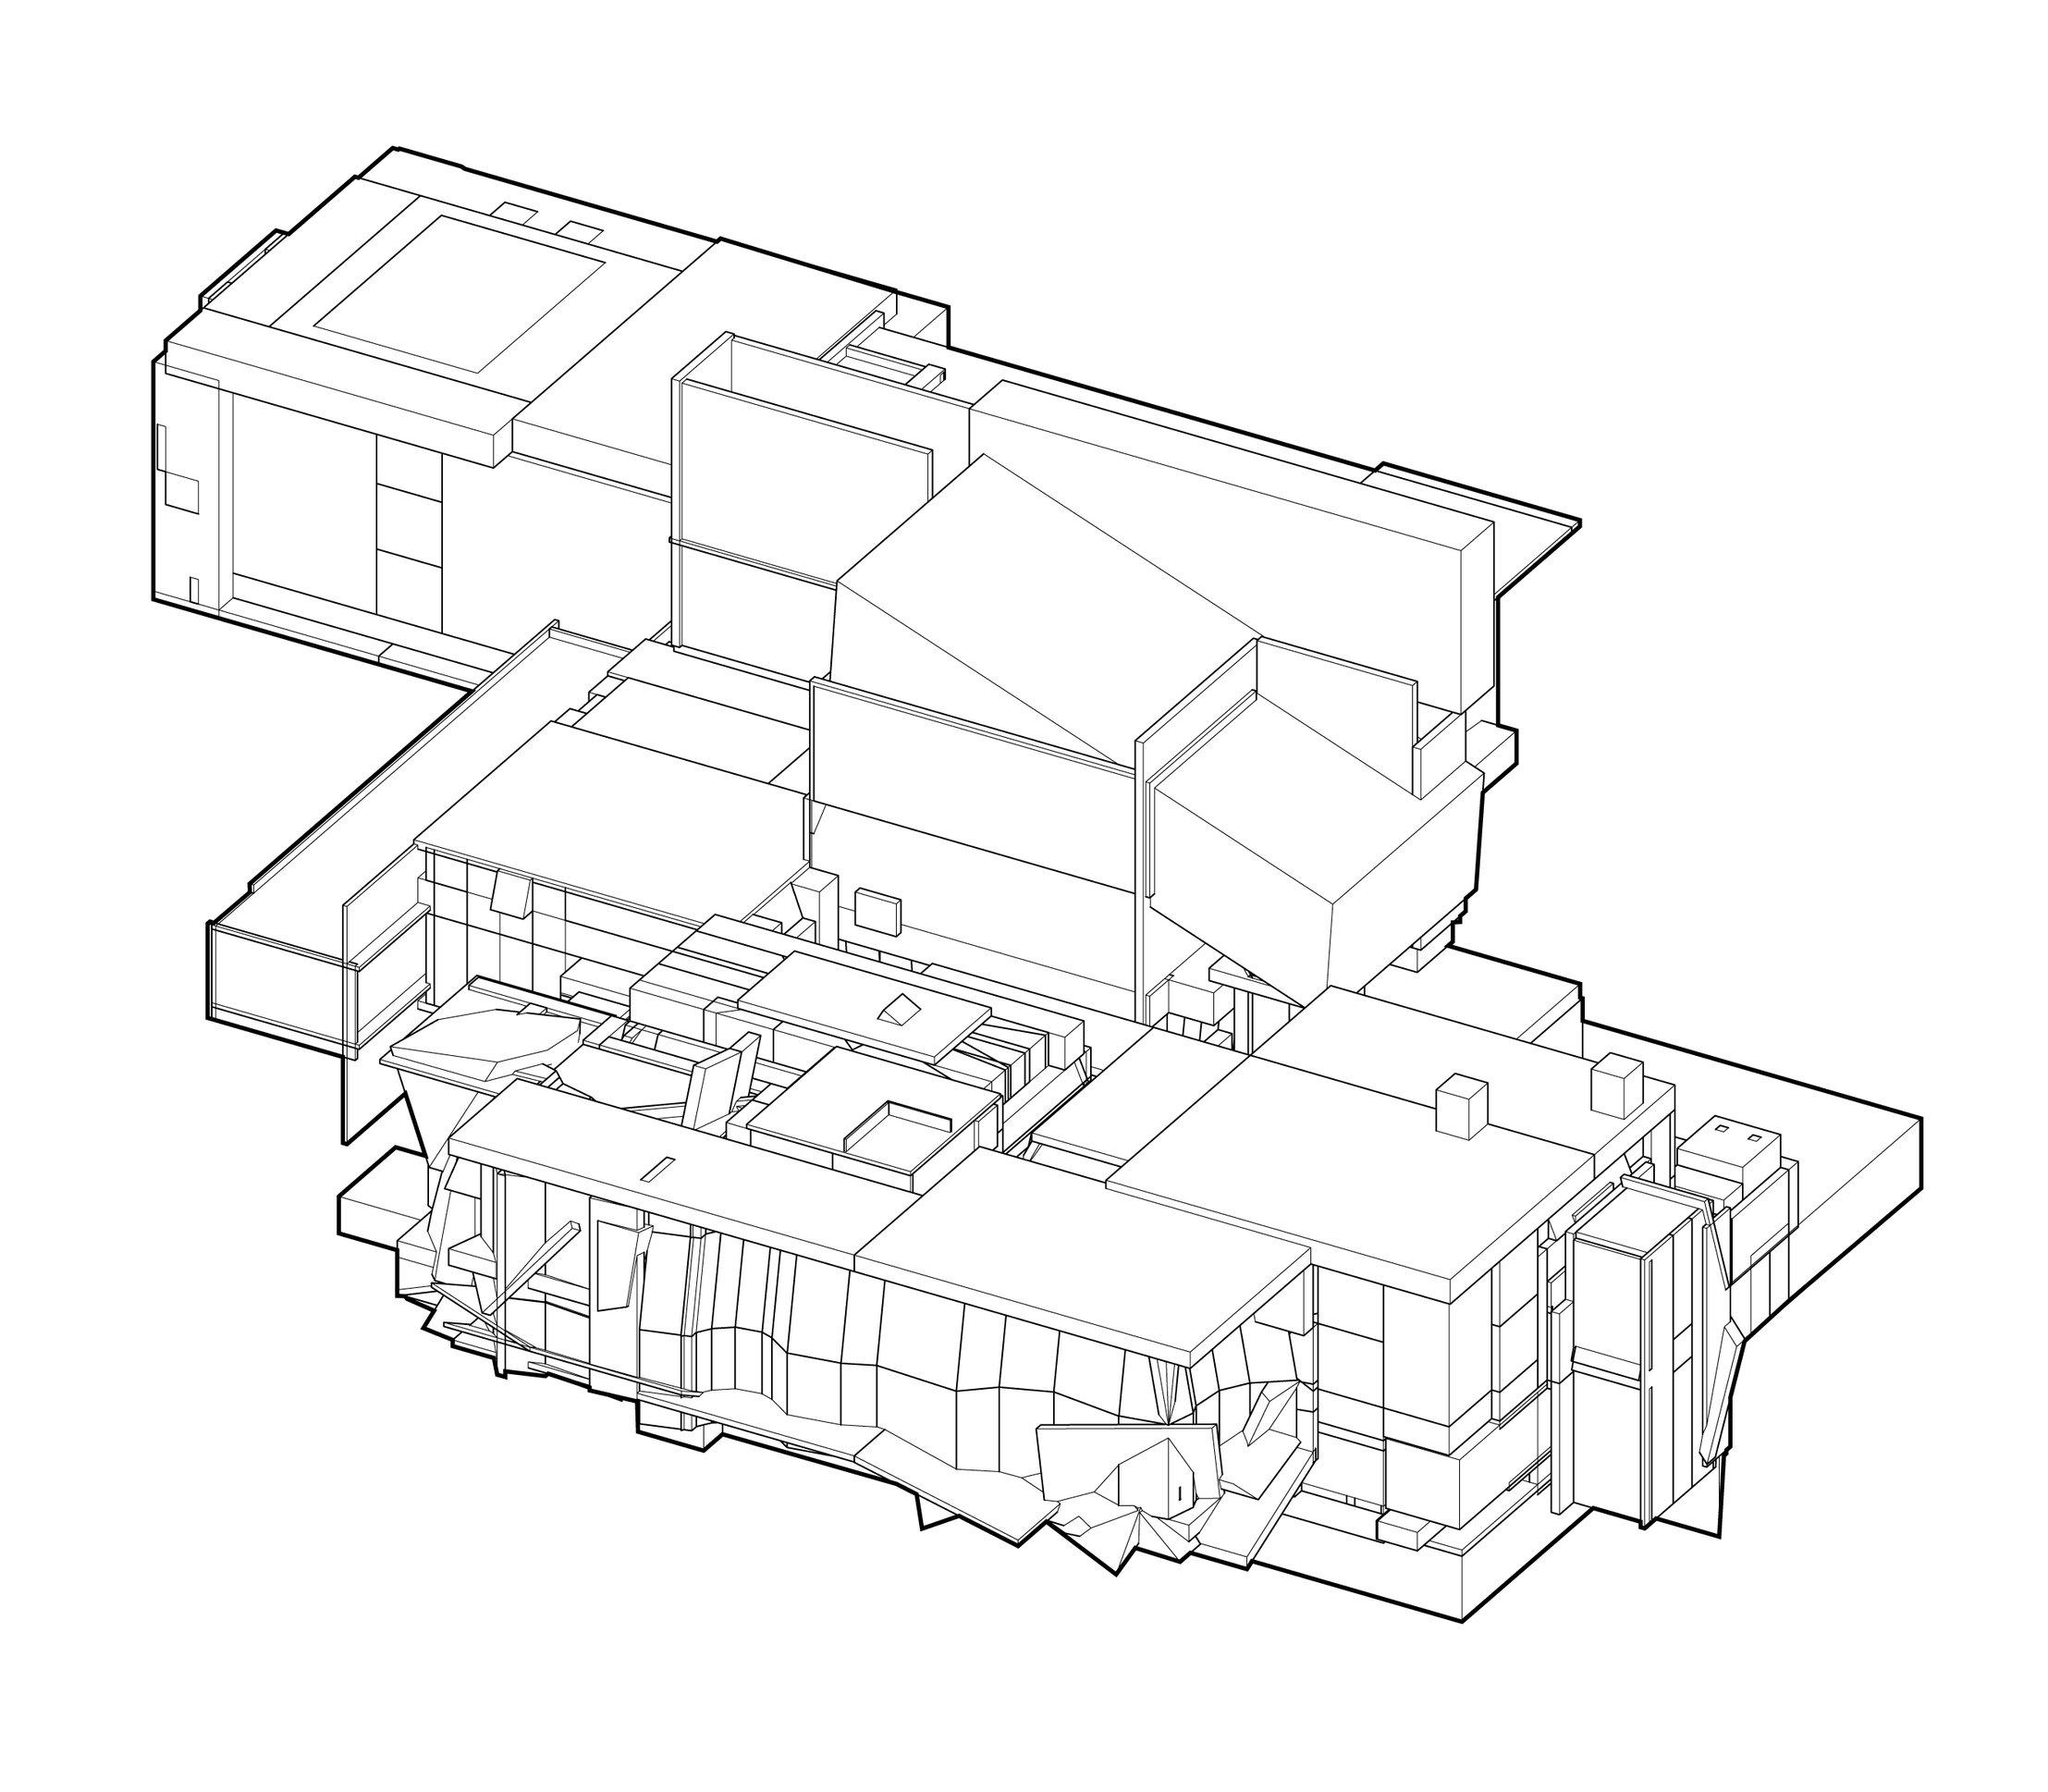 An Exhaustive Extraction of the Axonometric Space of Each Level of Quake 2, Stephen Turk